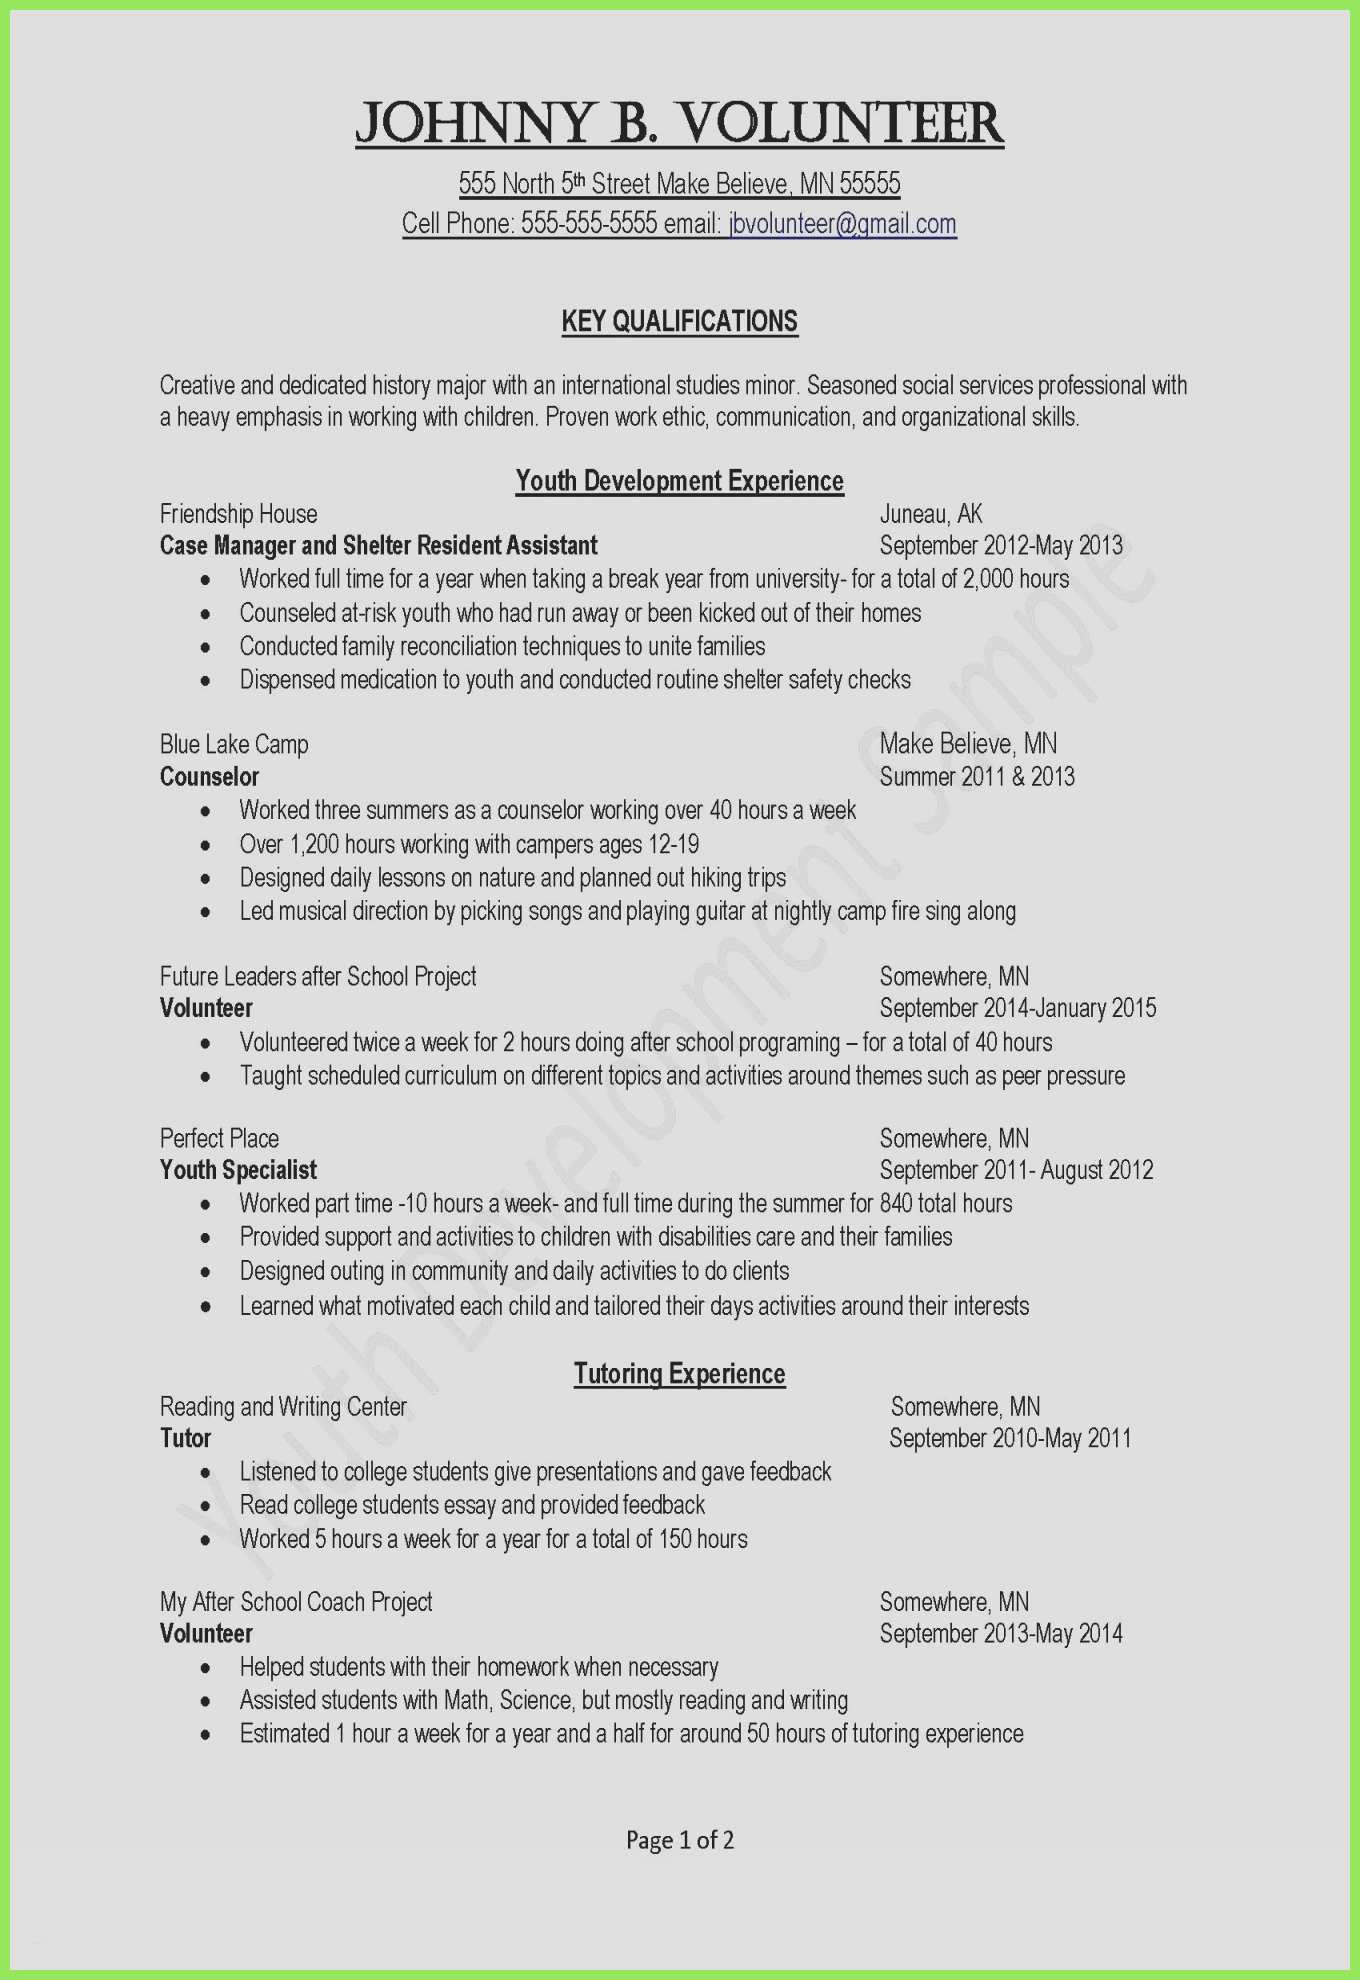 After School Counselor Resume - Guidance Counselor Cover Letter